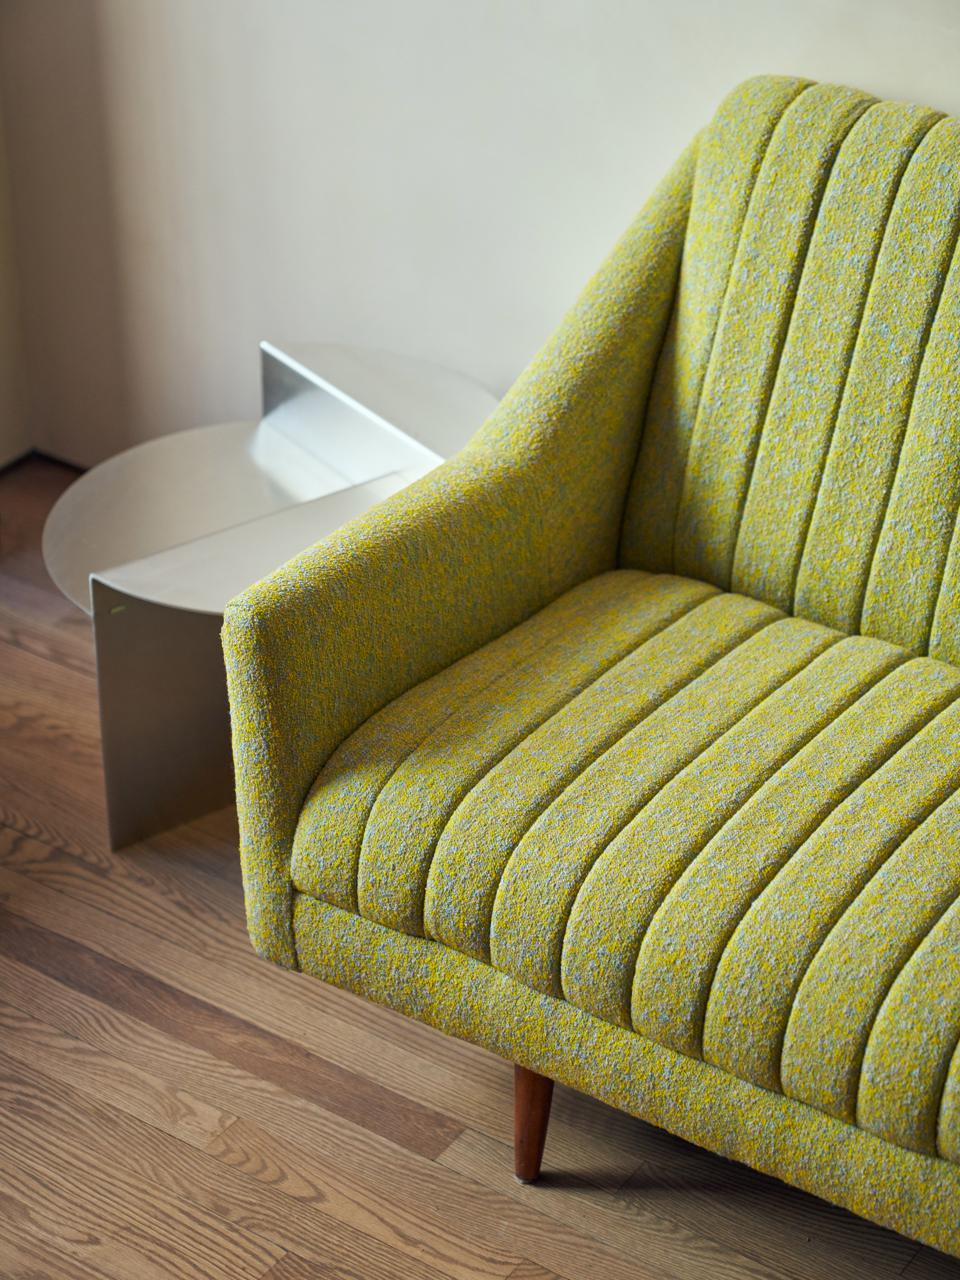 Sofa details at Paintbox's new Upper East Side location